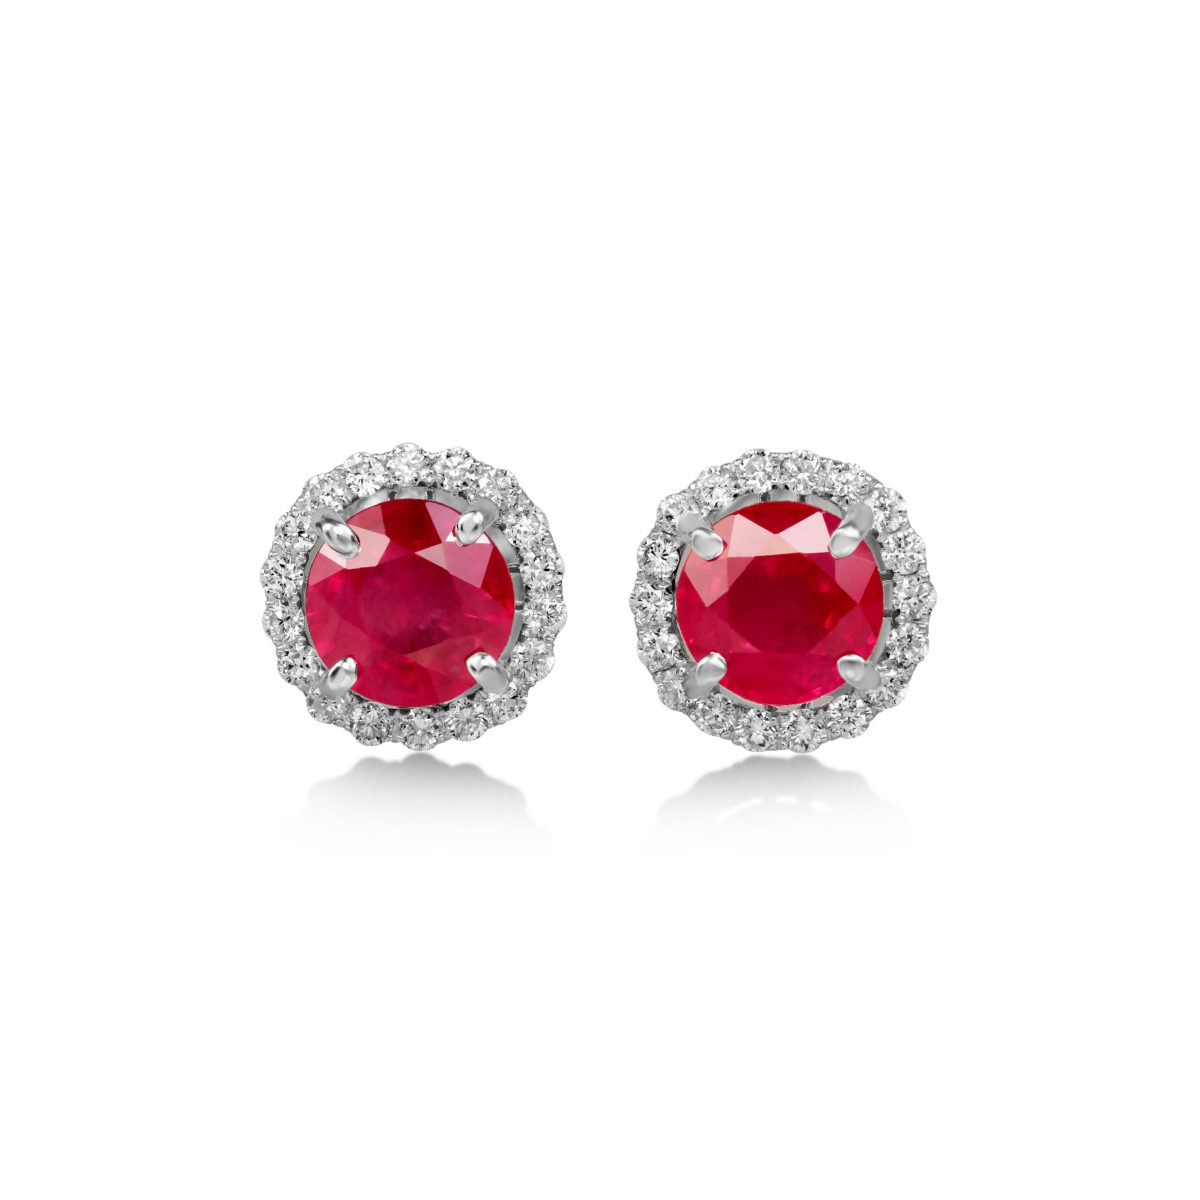 1 99 Carat Round Cut Ruby Diamond Halo Stud Earrings